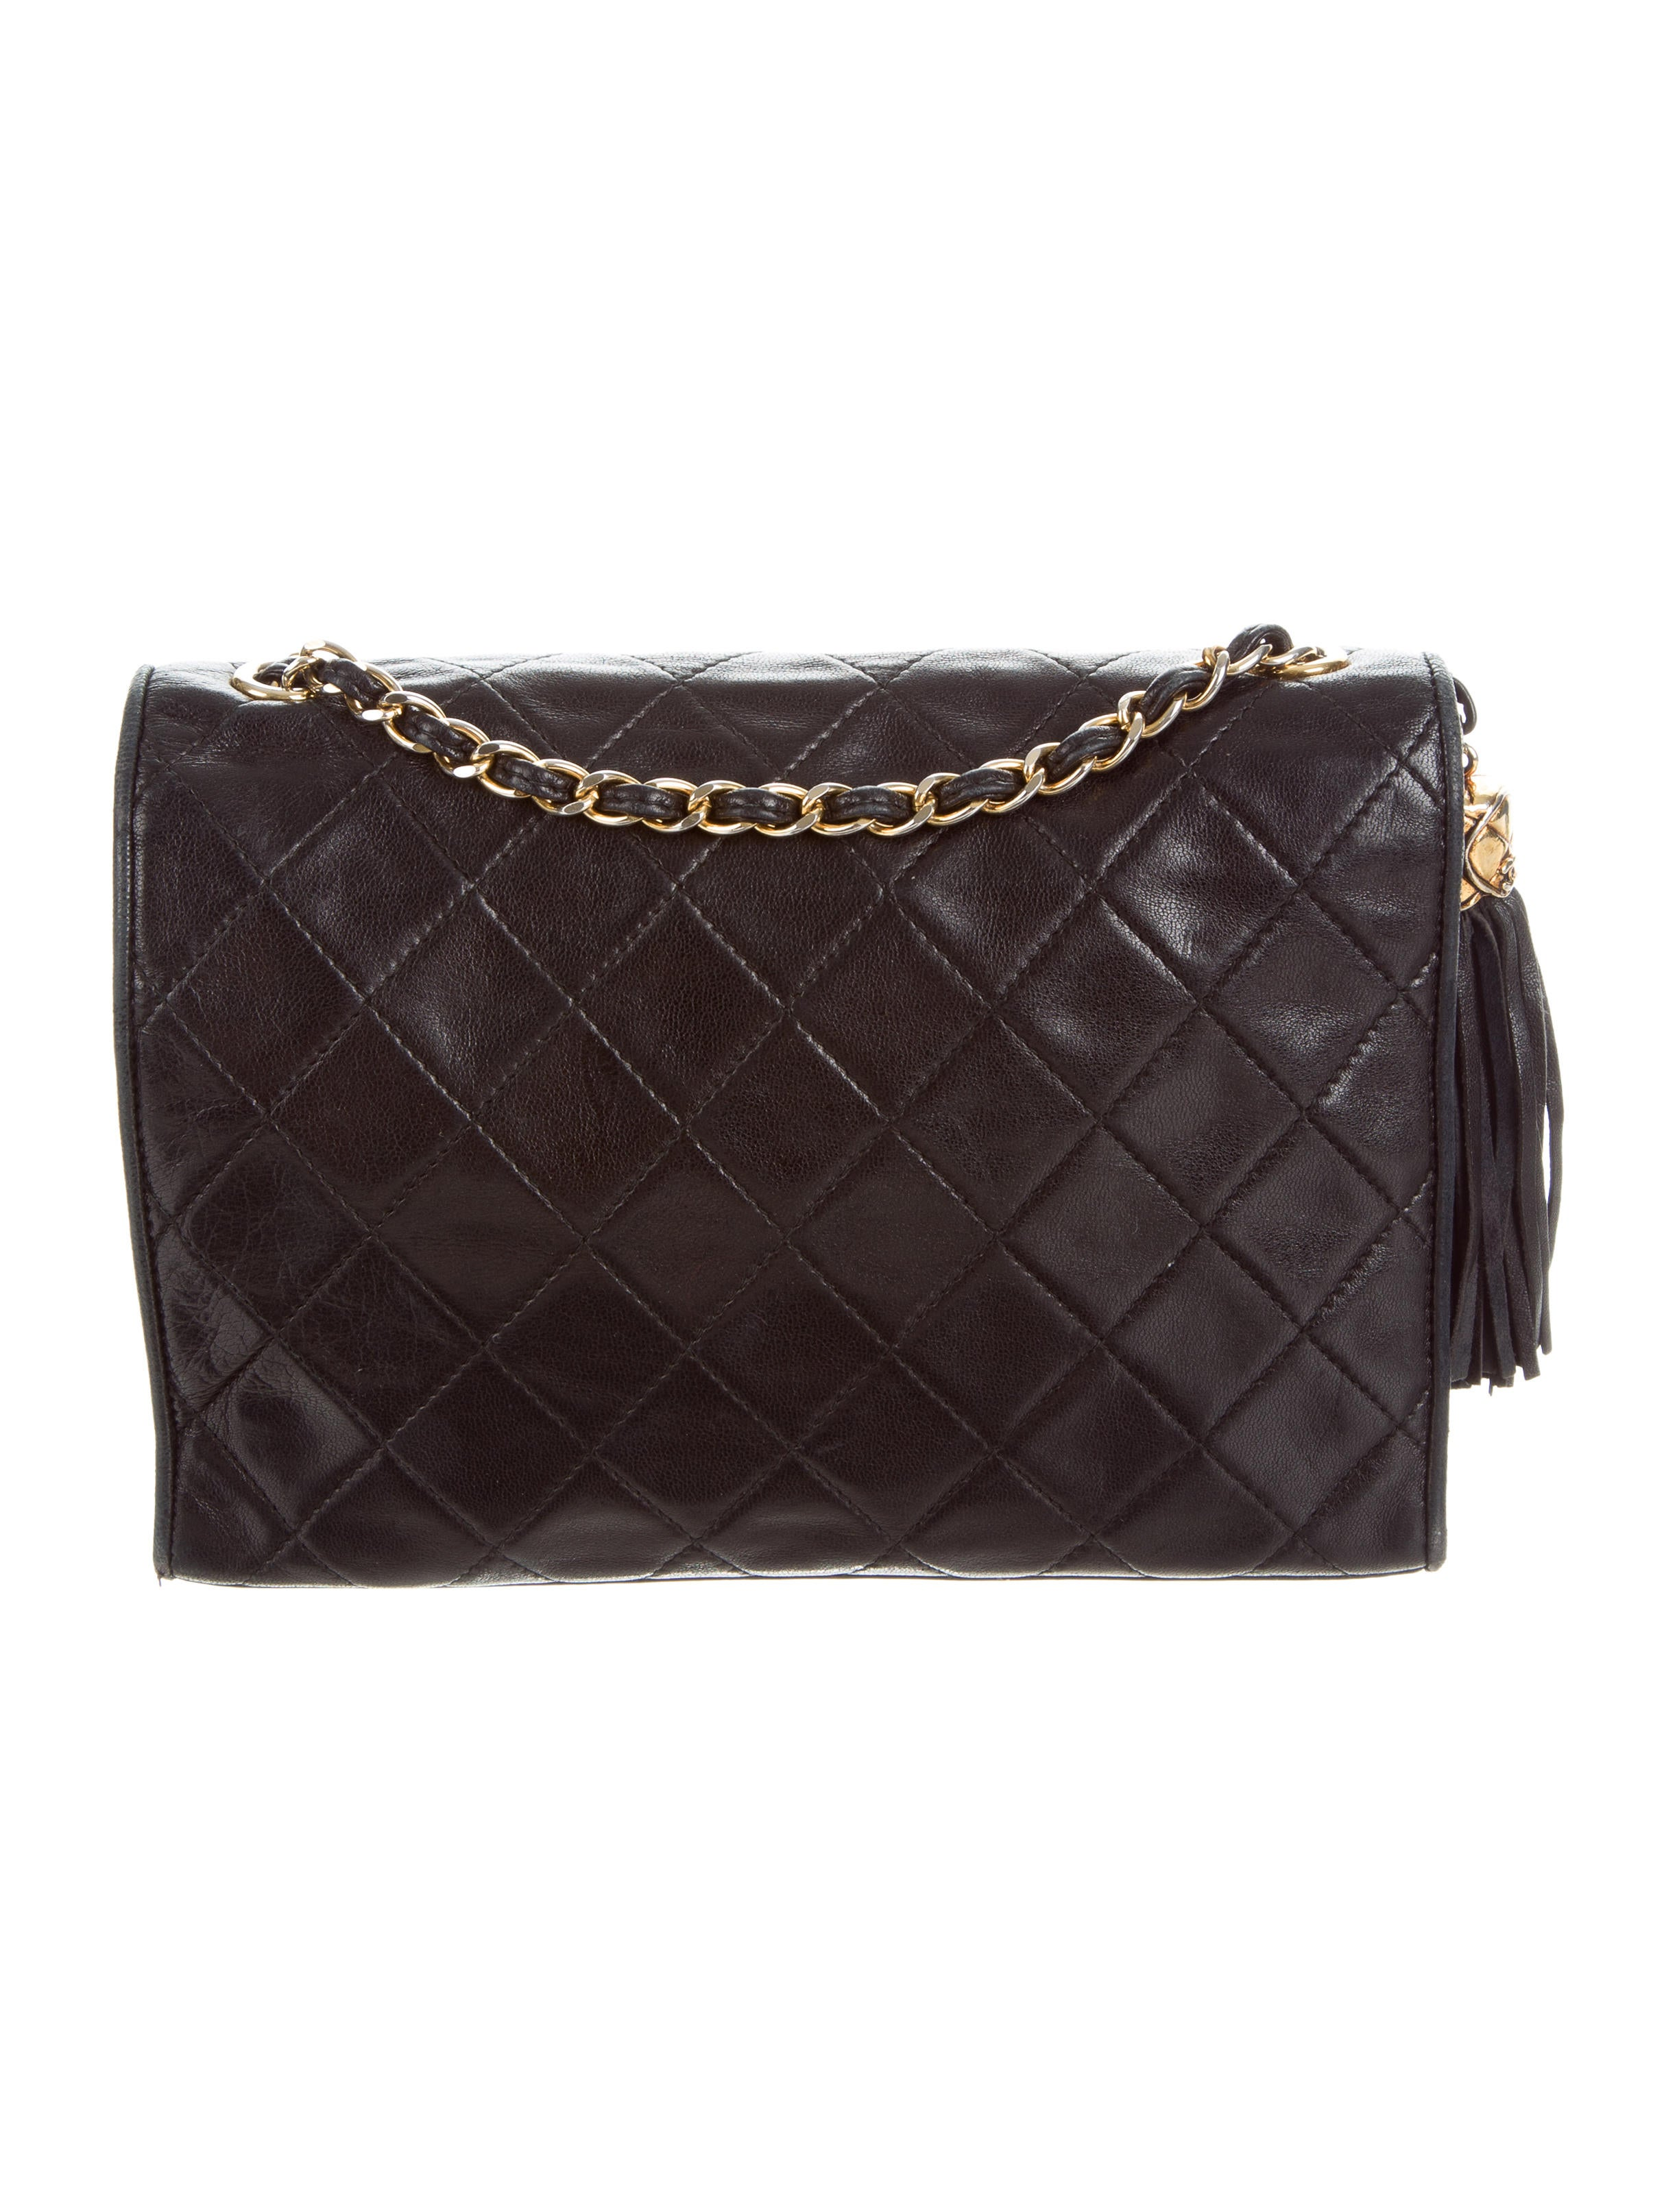 a1d9e6244ab7 ... Vintage quilted handbag. SALE now on. Banana Republic, constructed  striking geo texture. Kings Lane sell handbags including Full Small  Gold-tone other ...